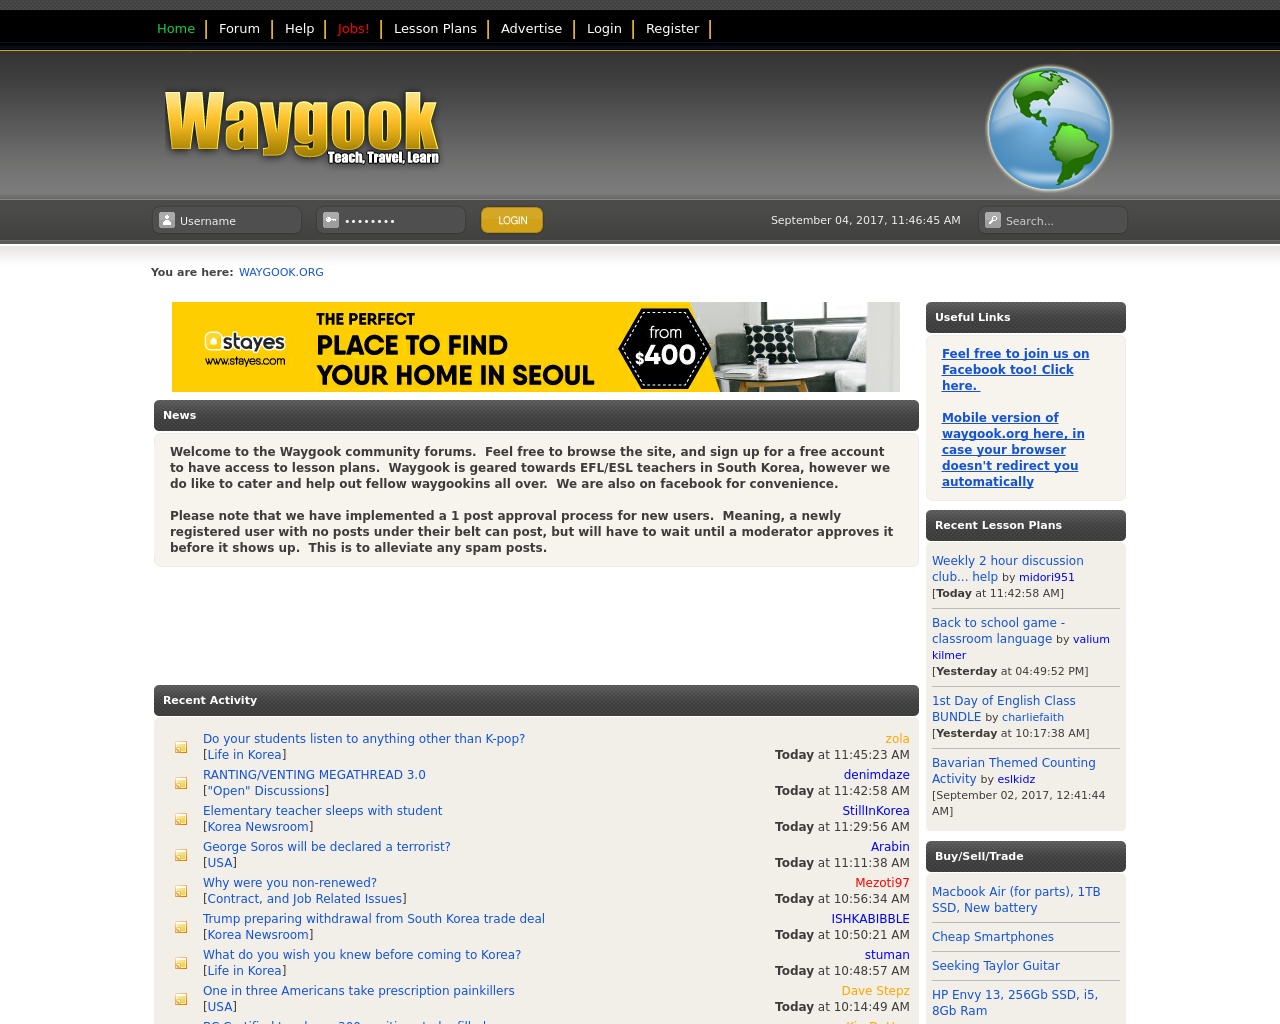 Waygook-Tech-Travel-and-Learn-Advertising-Reviews-Pricing